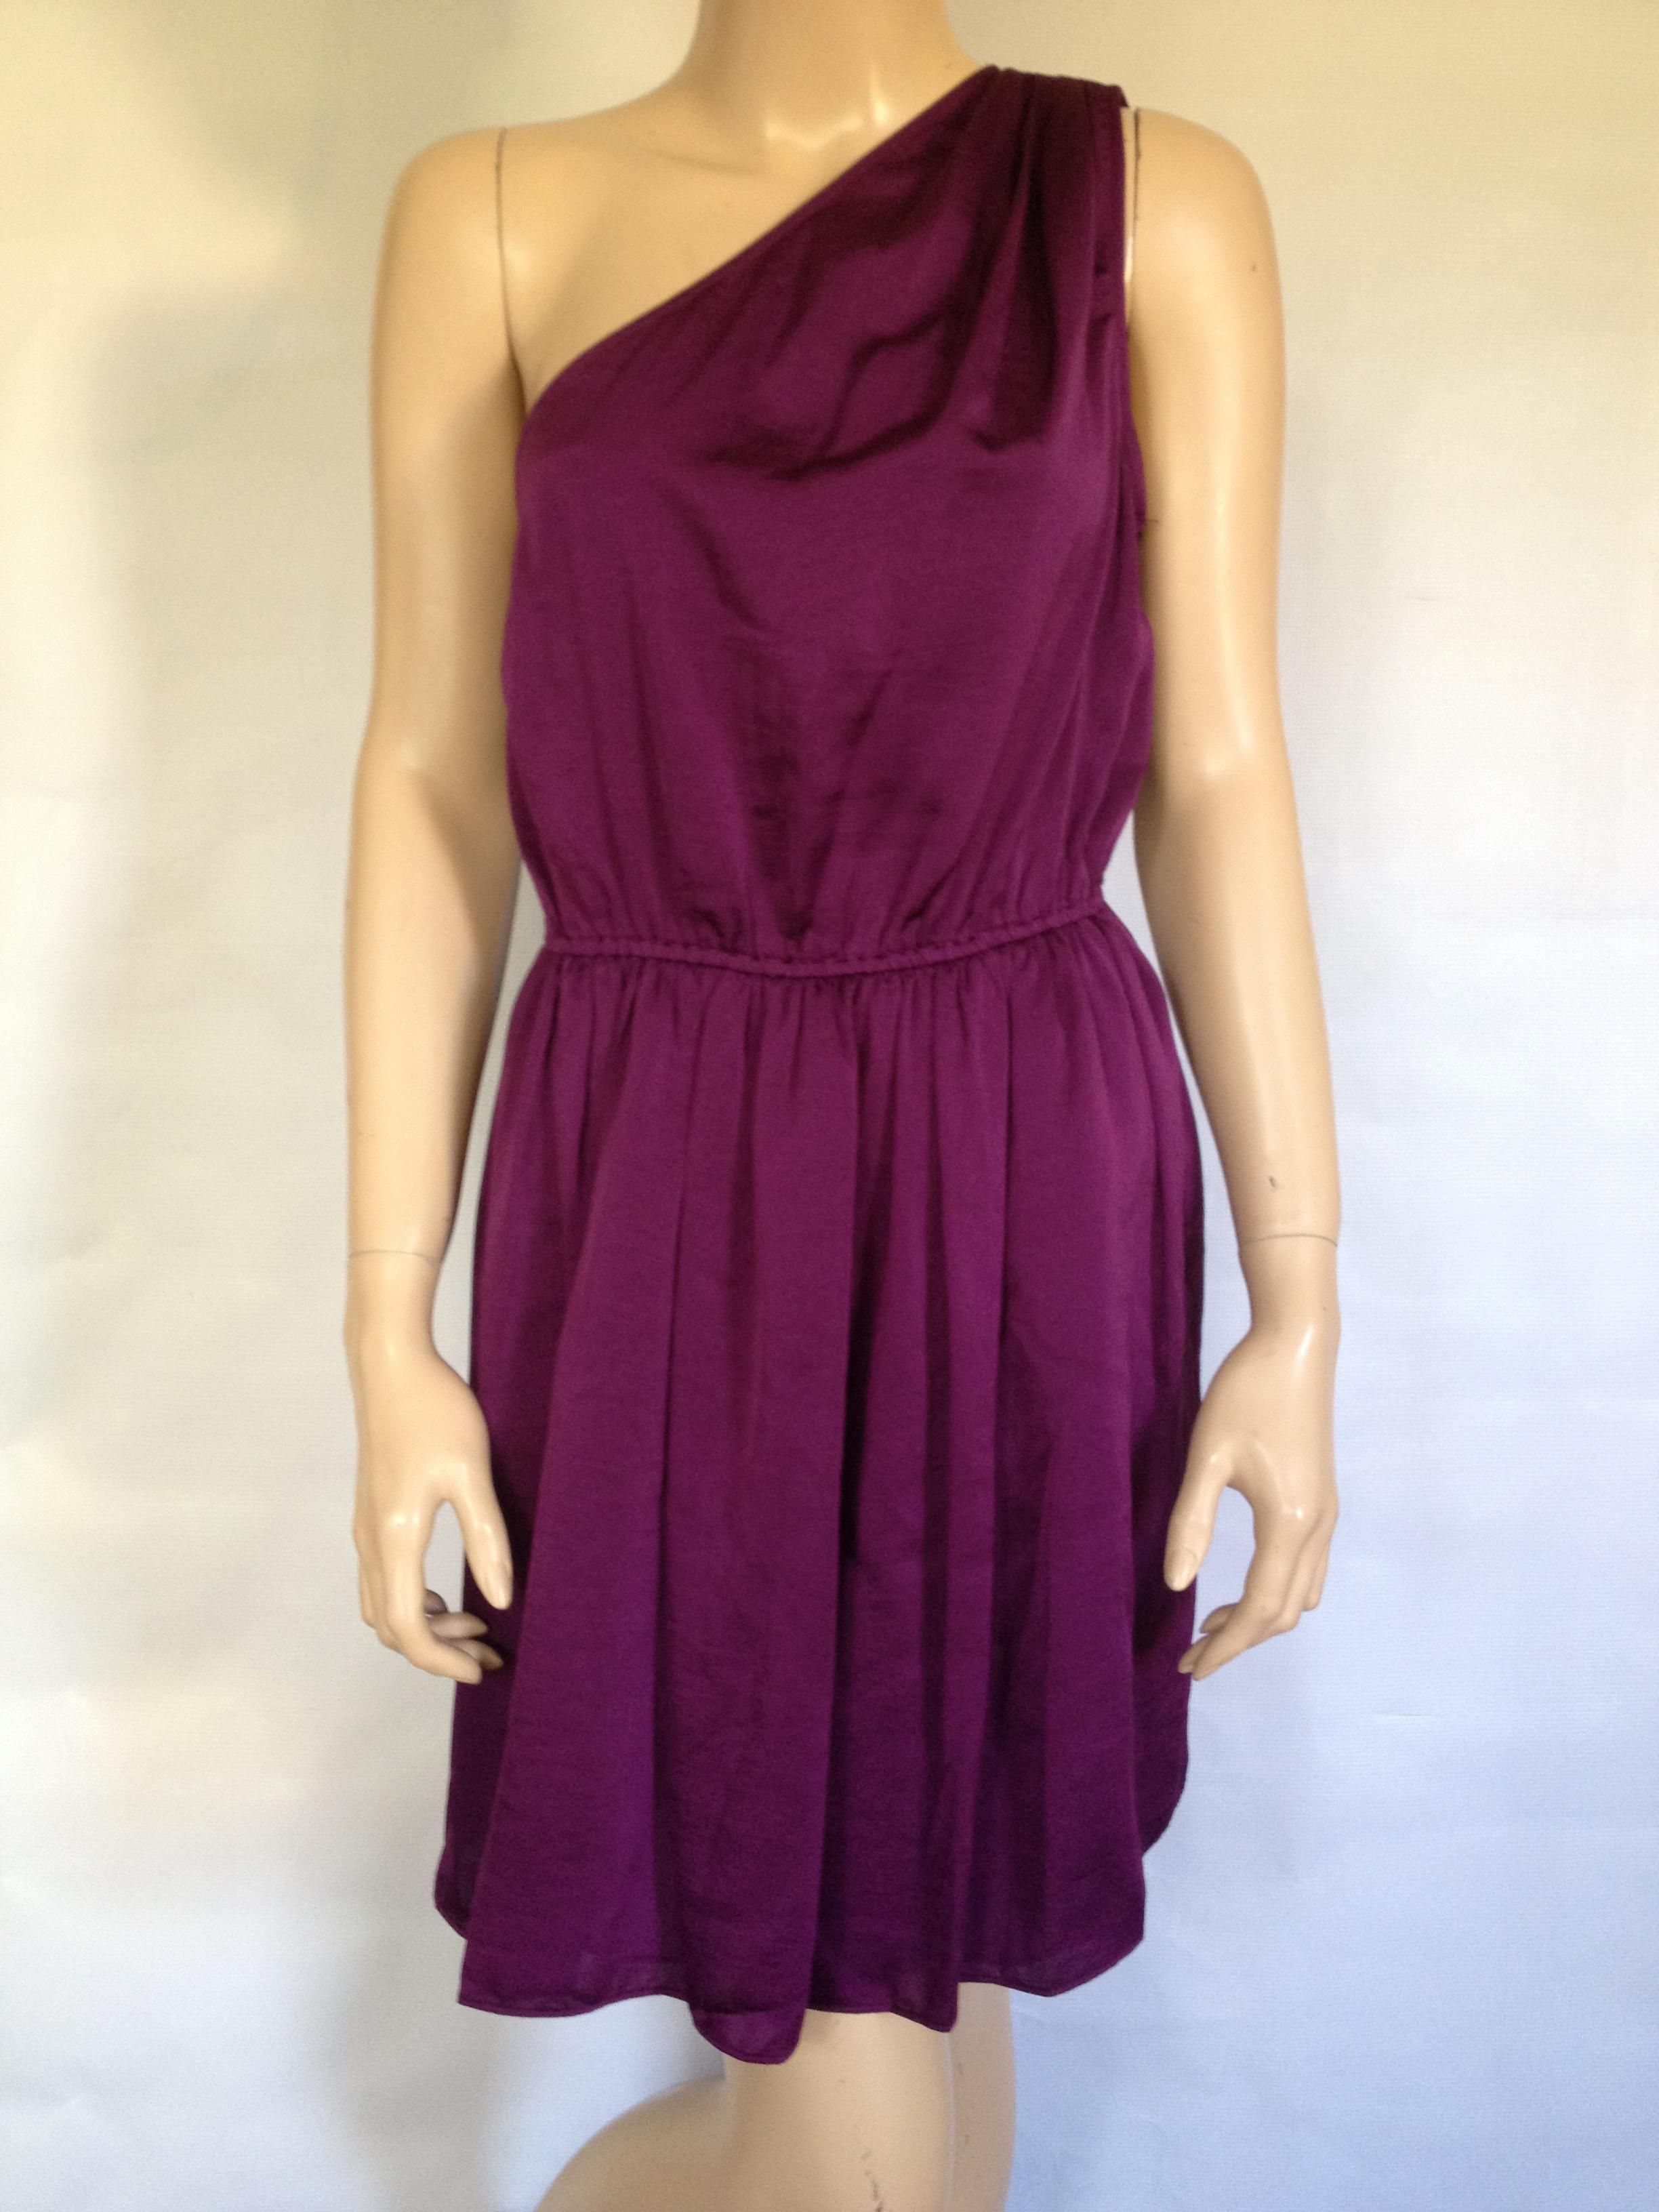 85d1ba0a7cb BCBGeneration Purple Bcbg Grecian Size Xs Extra Small Dress. Free shipping  and guaranteed authenticity on BCBGeneration Purple Bcbg Grecian Size Xs  Extra ...